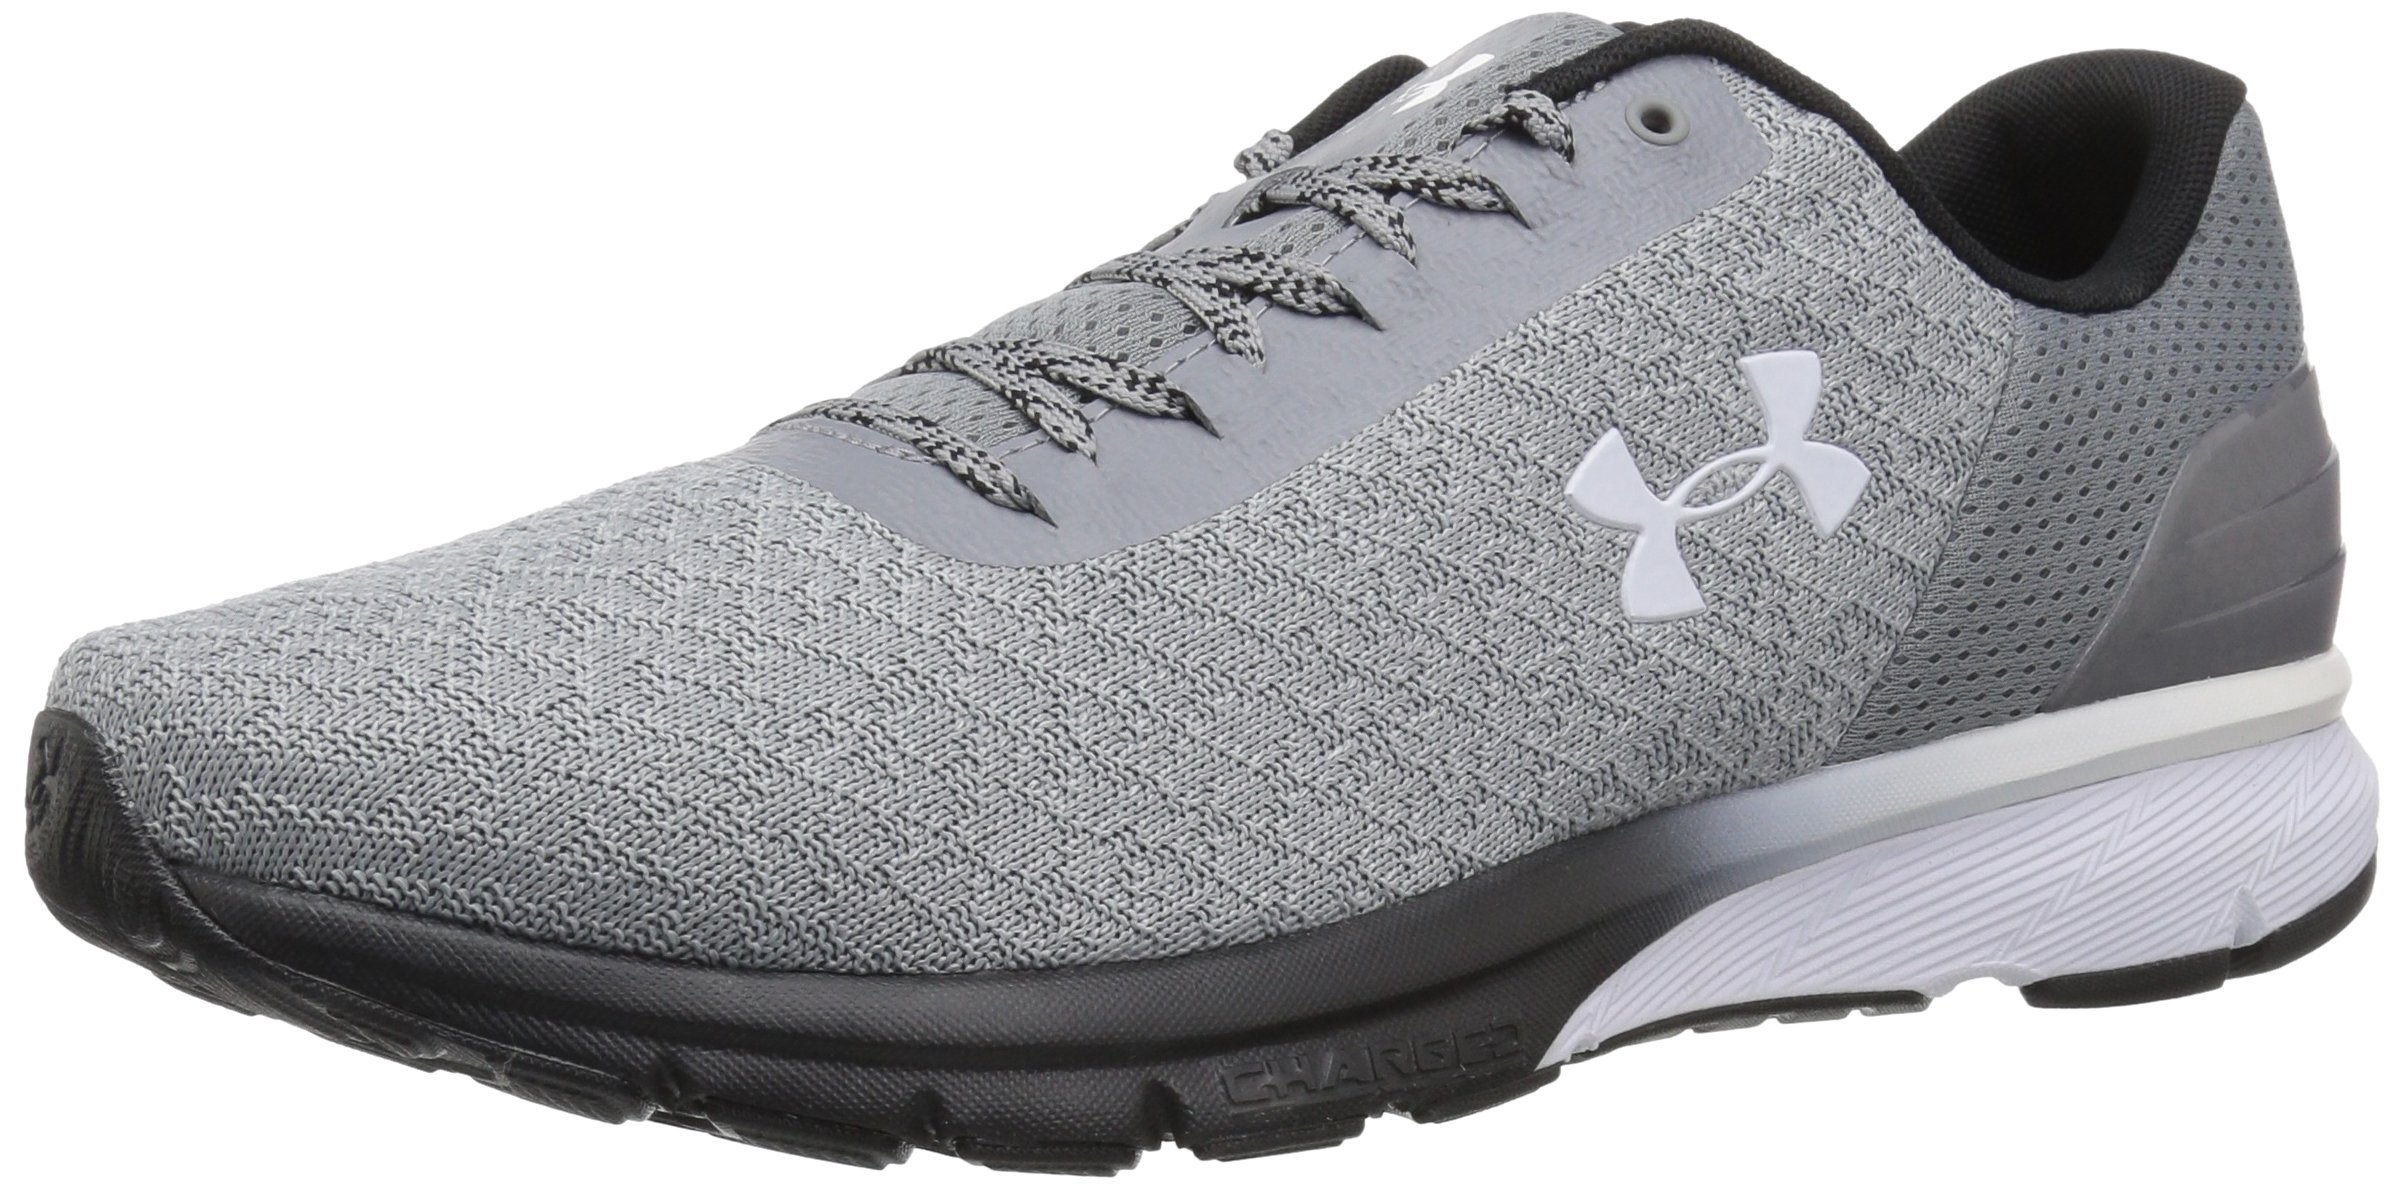 newest collection ba71d 5b3b4 Under Armour Men's Charged Escape 2 Running Shoe, Steel (103)/Overcast  Gray, 8.5